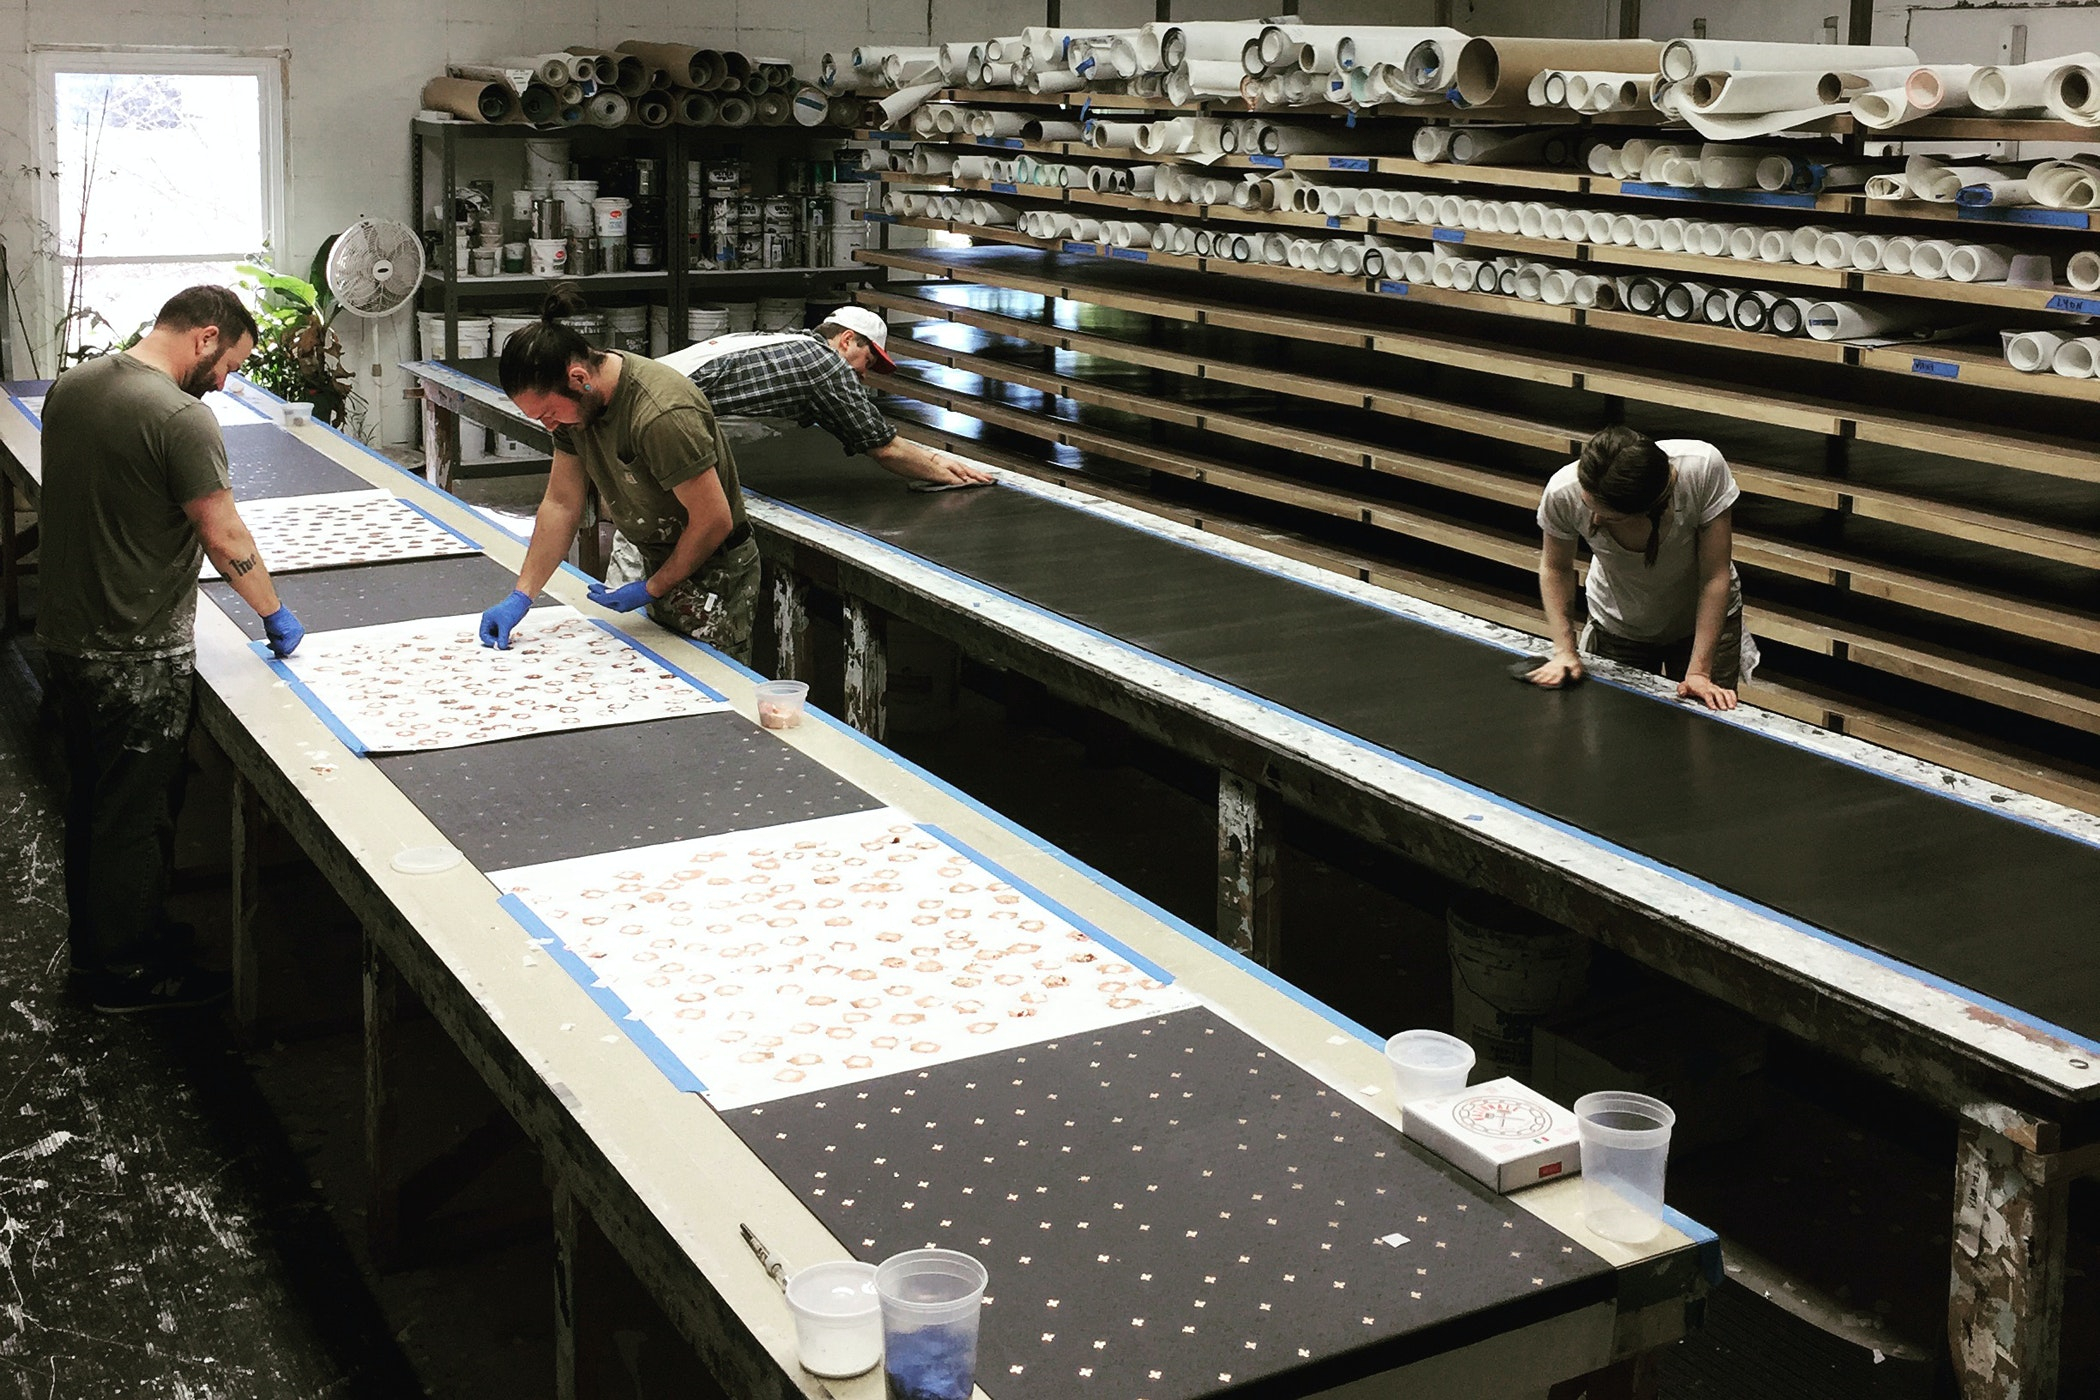 Group of artists working paper projects on two long craft benches in a studio room